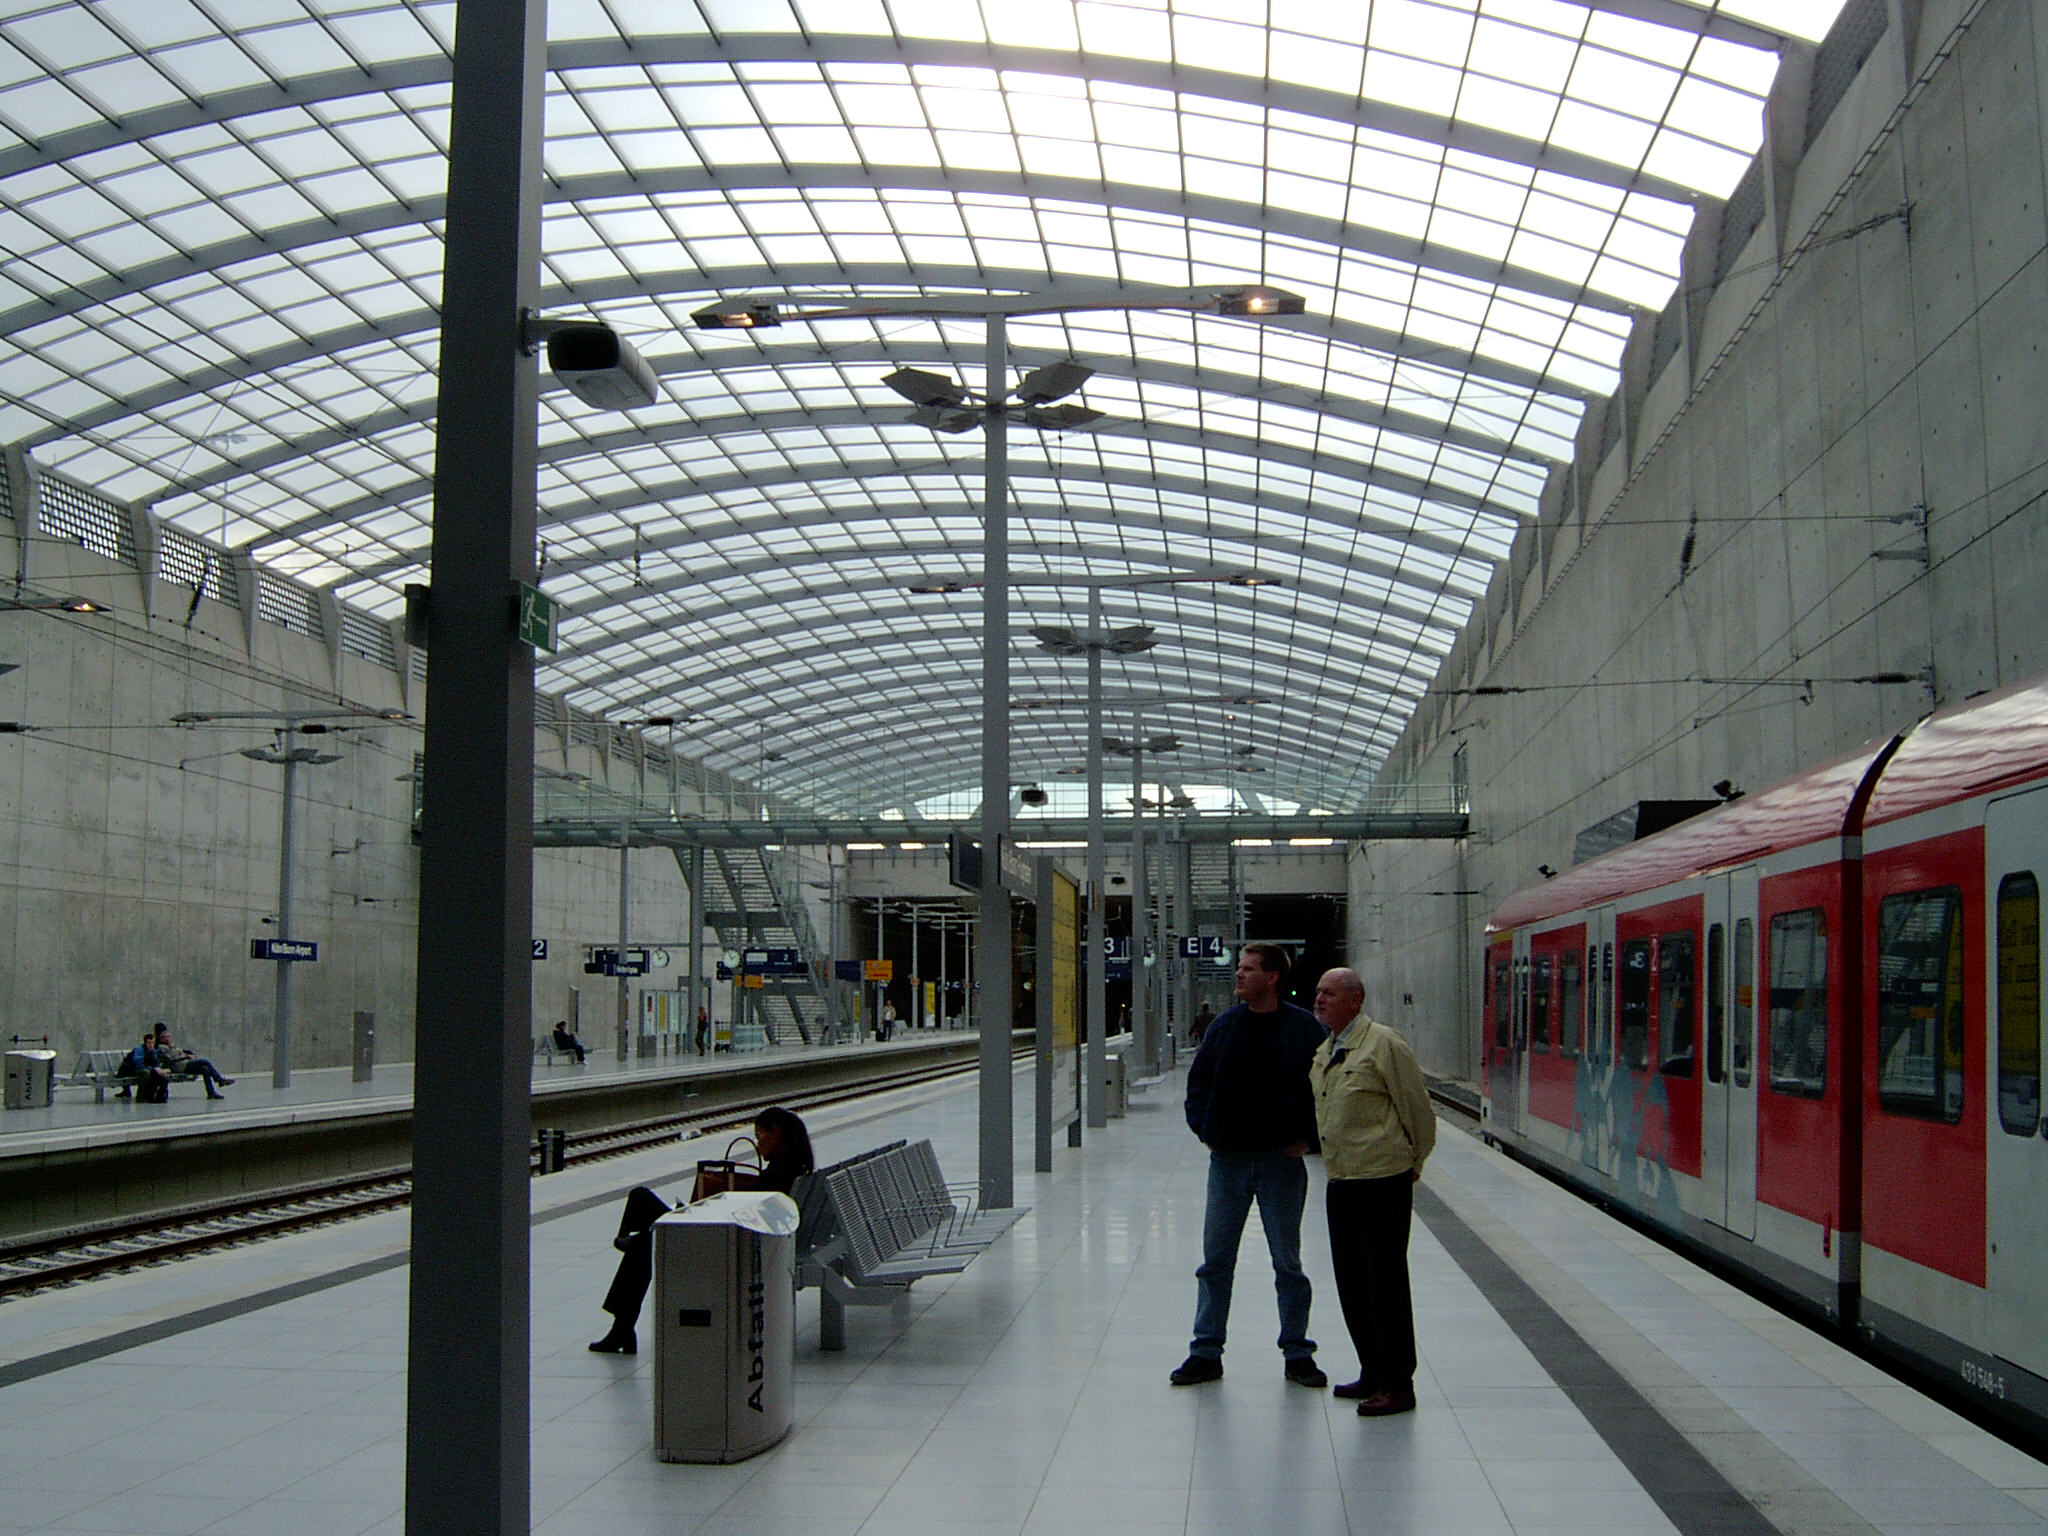 FileCologne Bonn Airport Stationjpg Wikimedia Commons